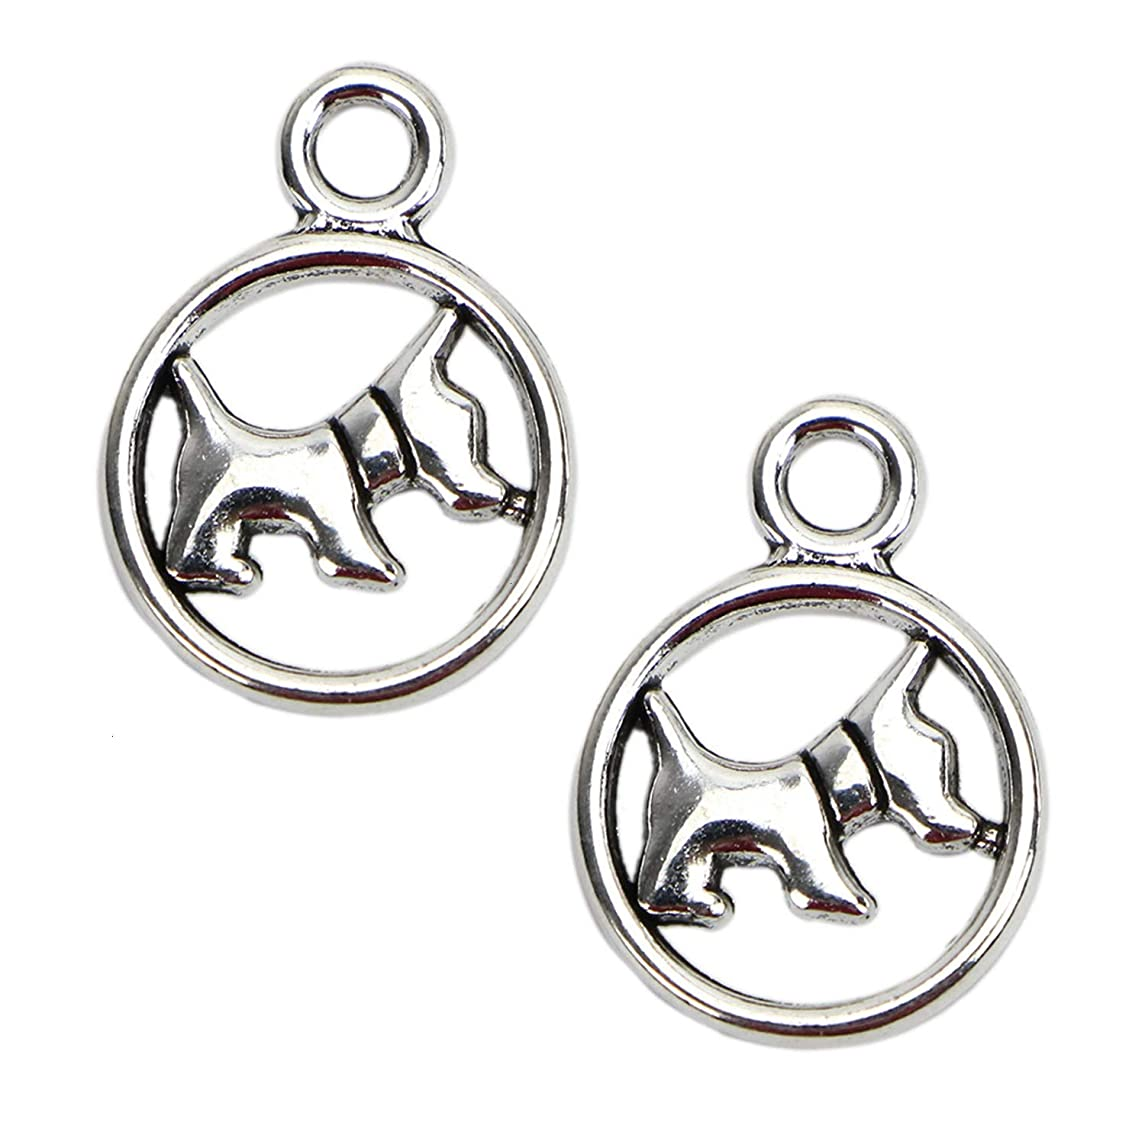 Monrocco 50pcs Scotty Dog Charms Pendants for Bracelet Necklace Jewelry Findings Antique Silver 19x13mm